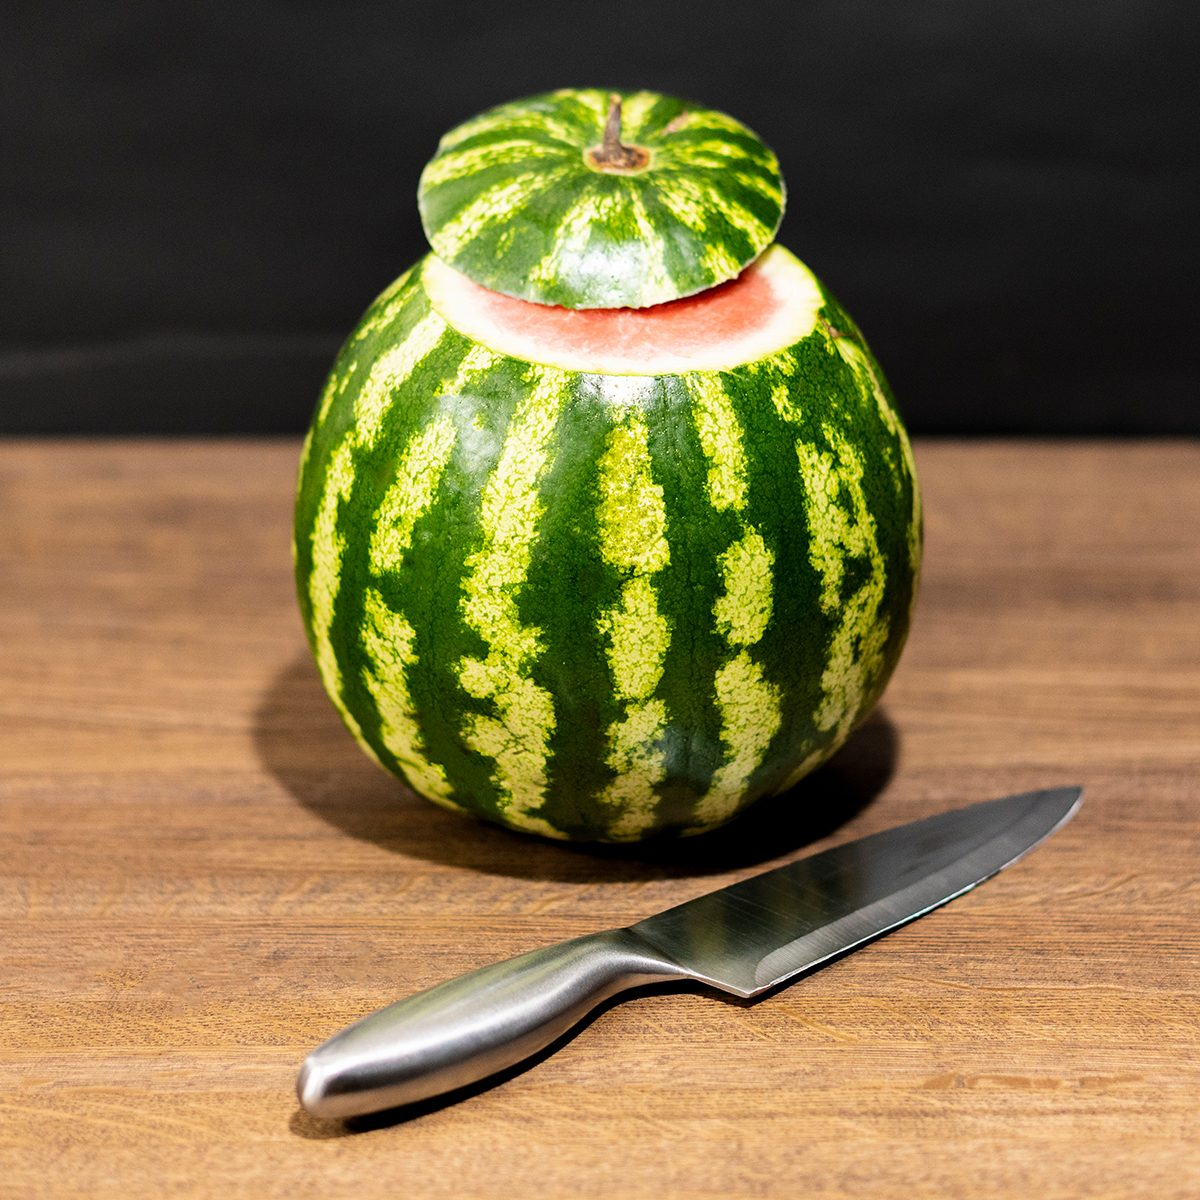 Watermelon on a wooden table.